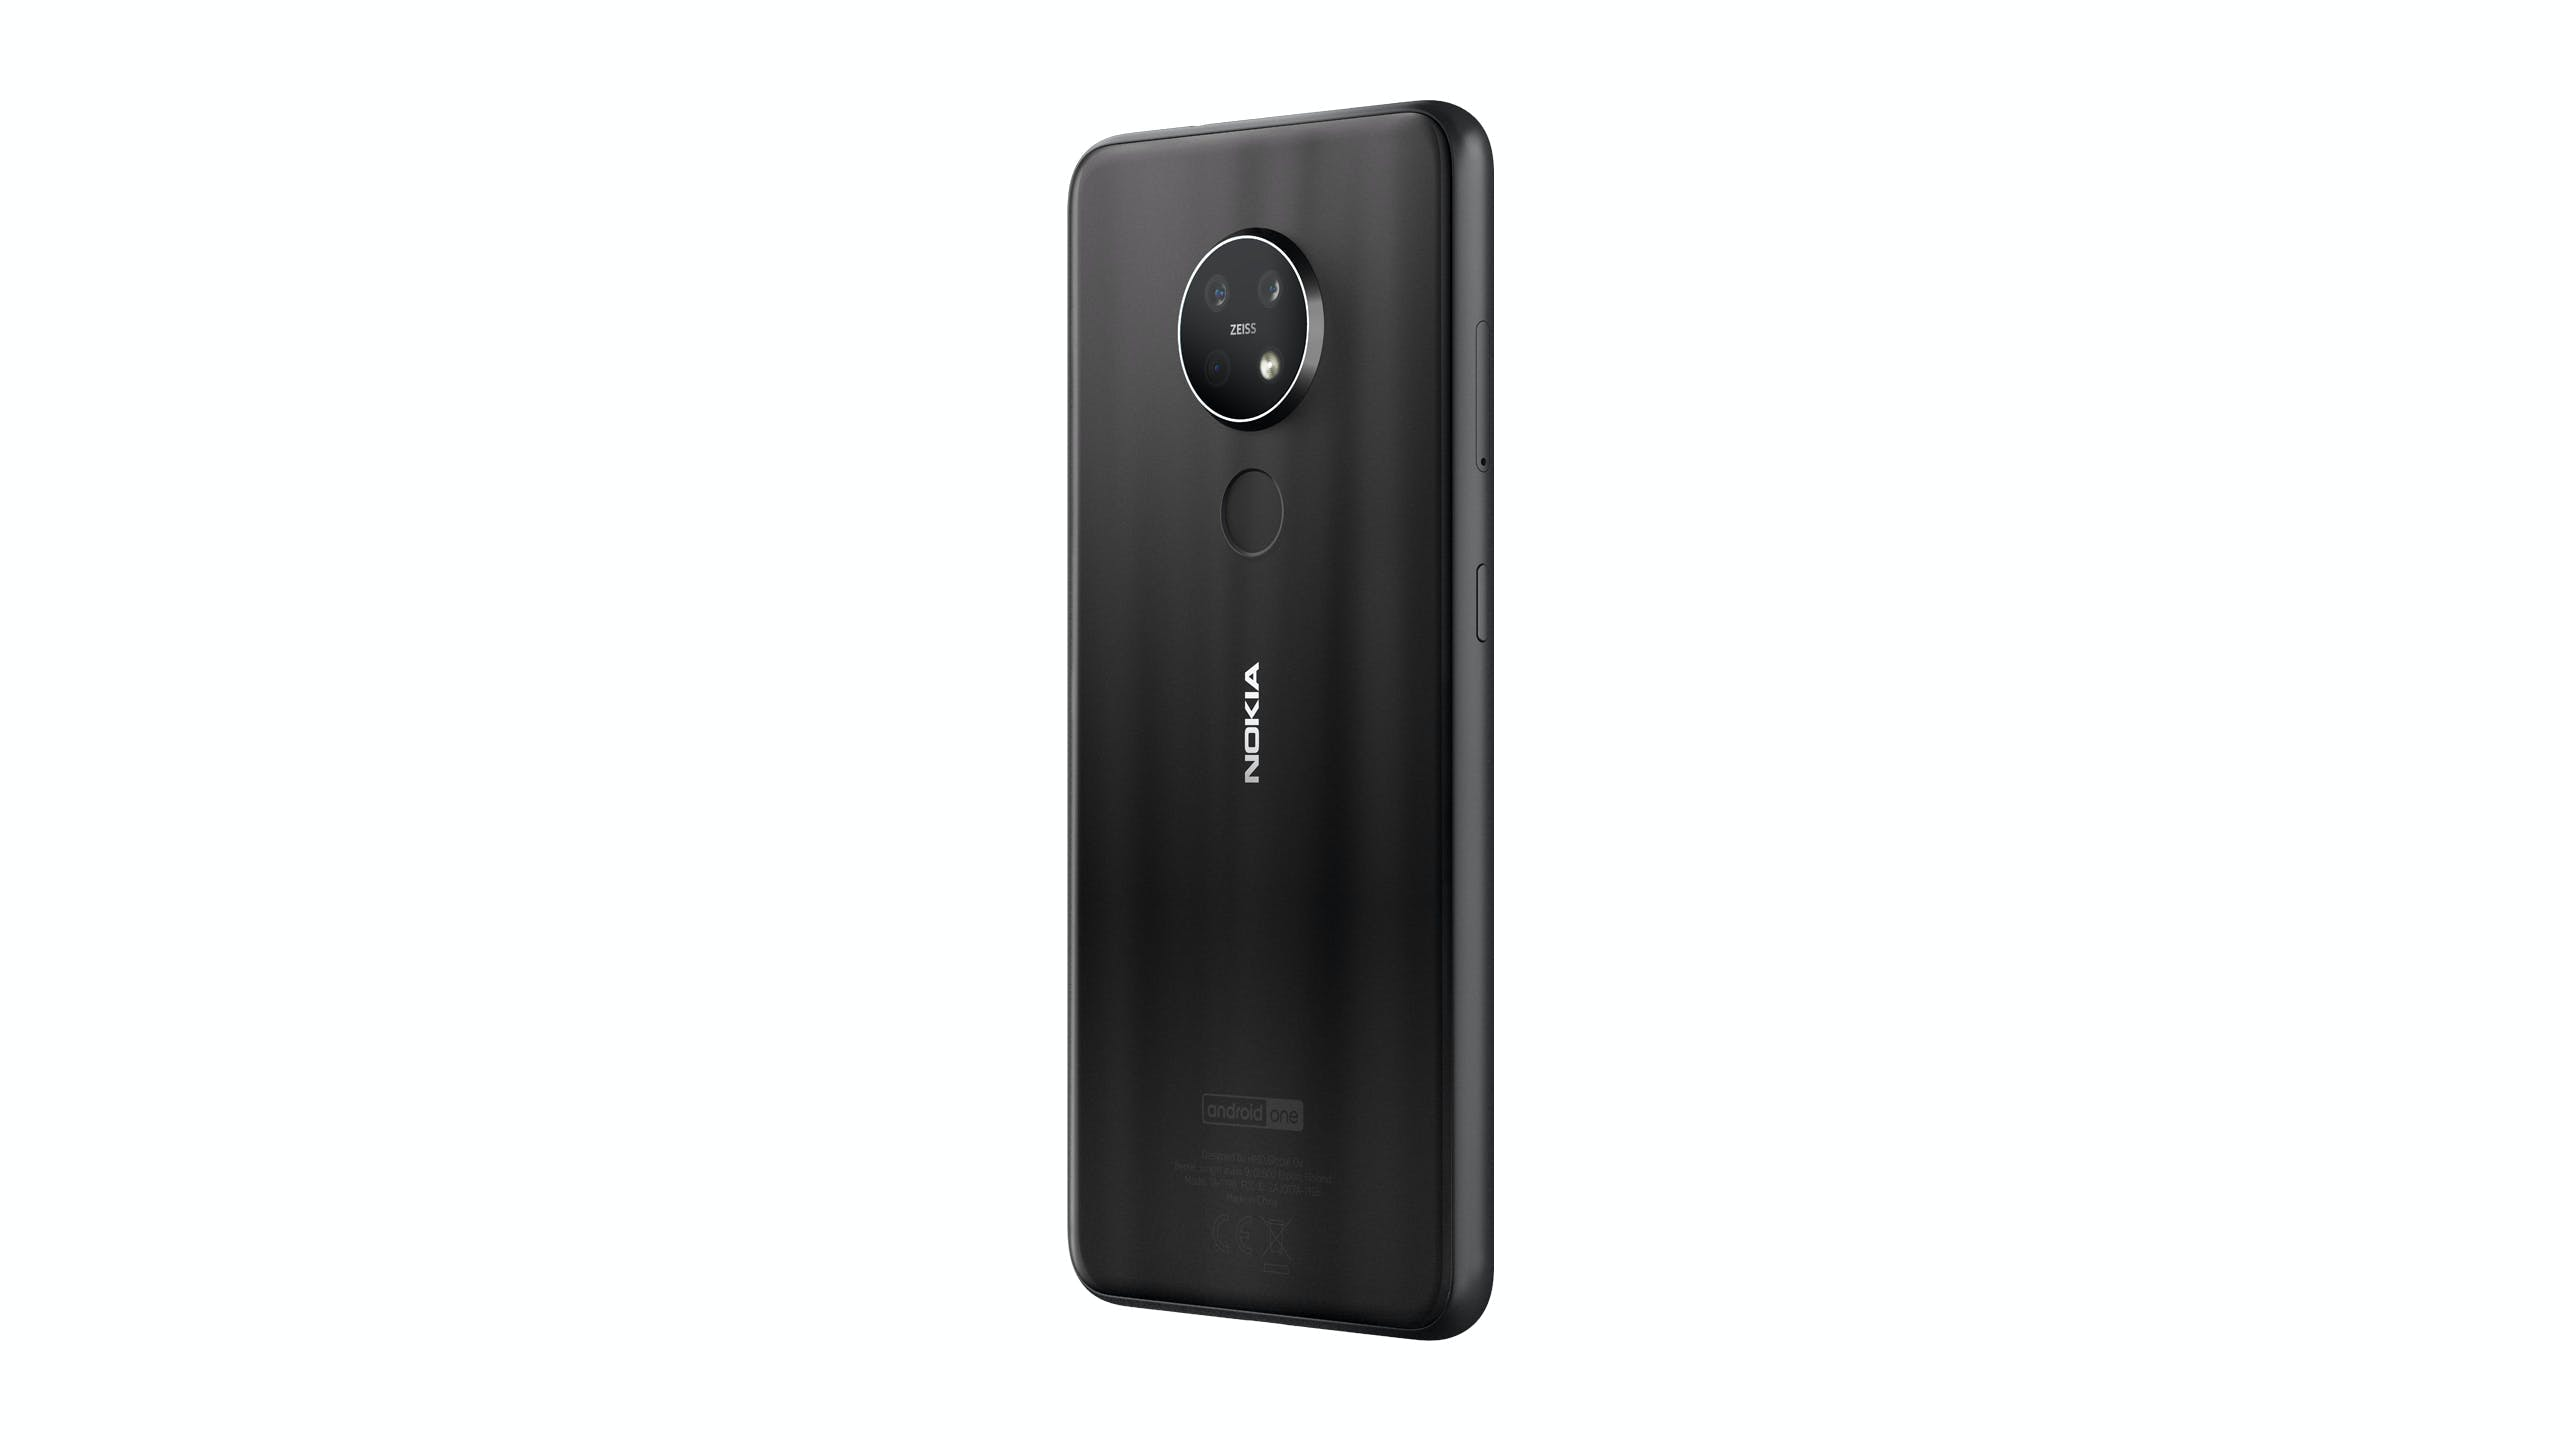 Spark Nokia 7.2 Smartphone - Charcoal